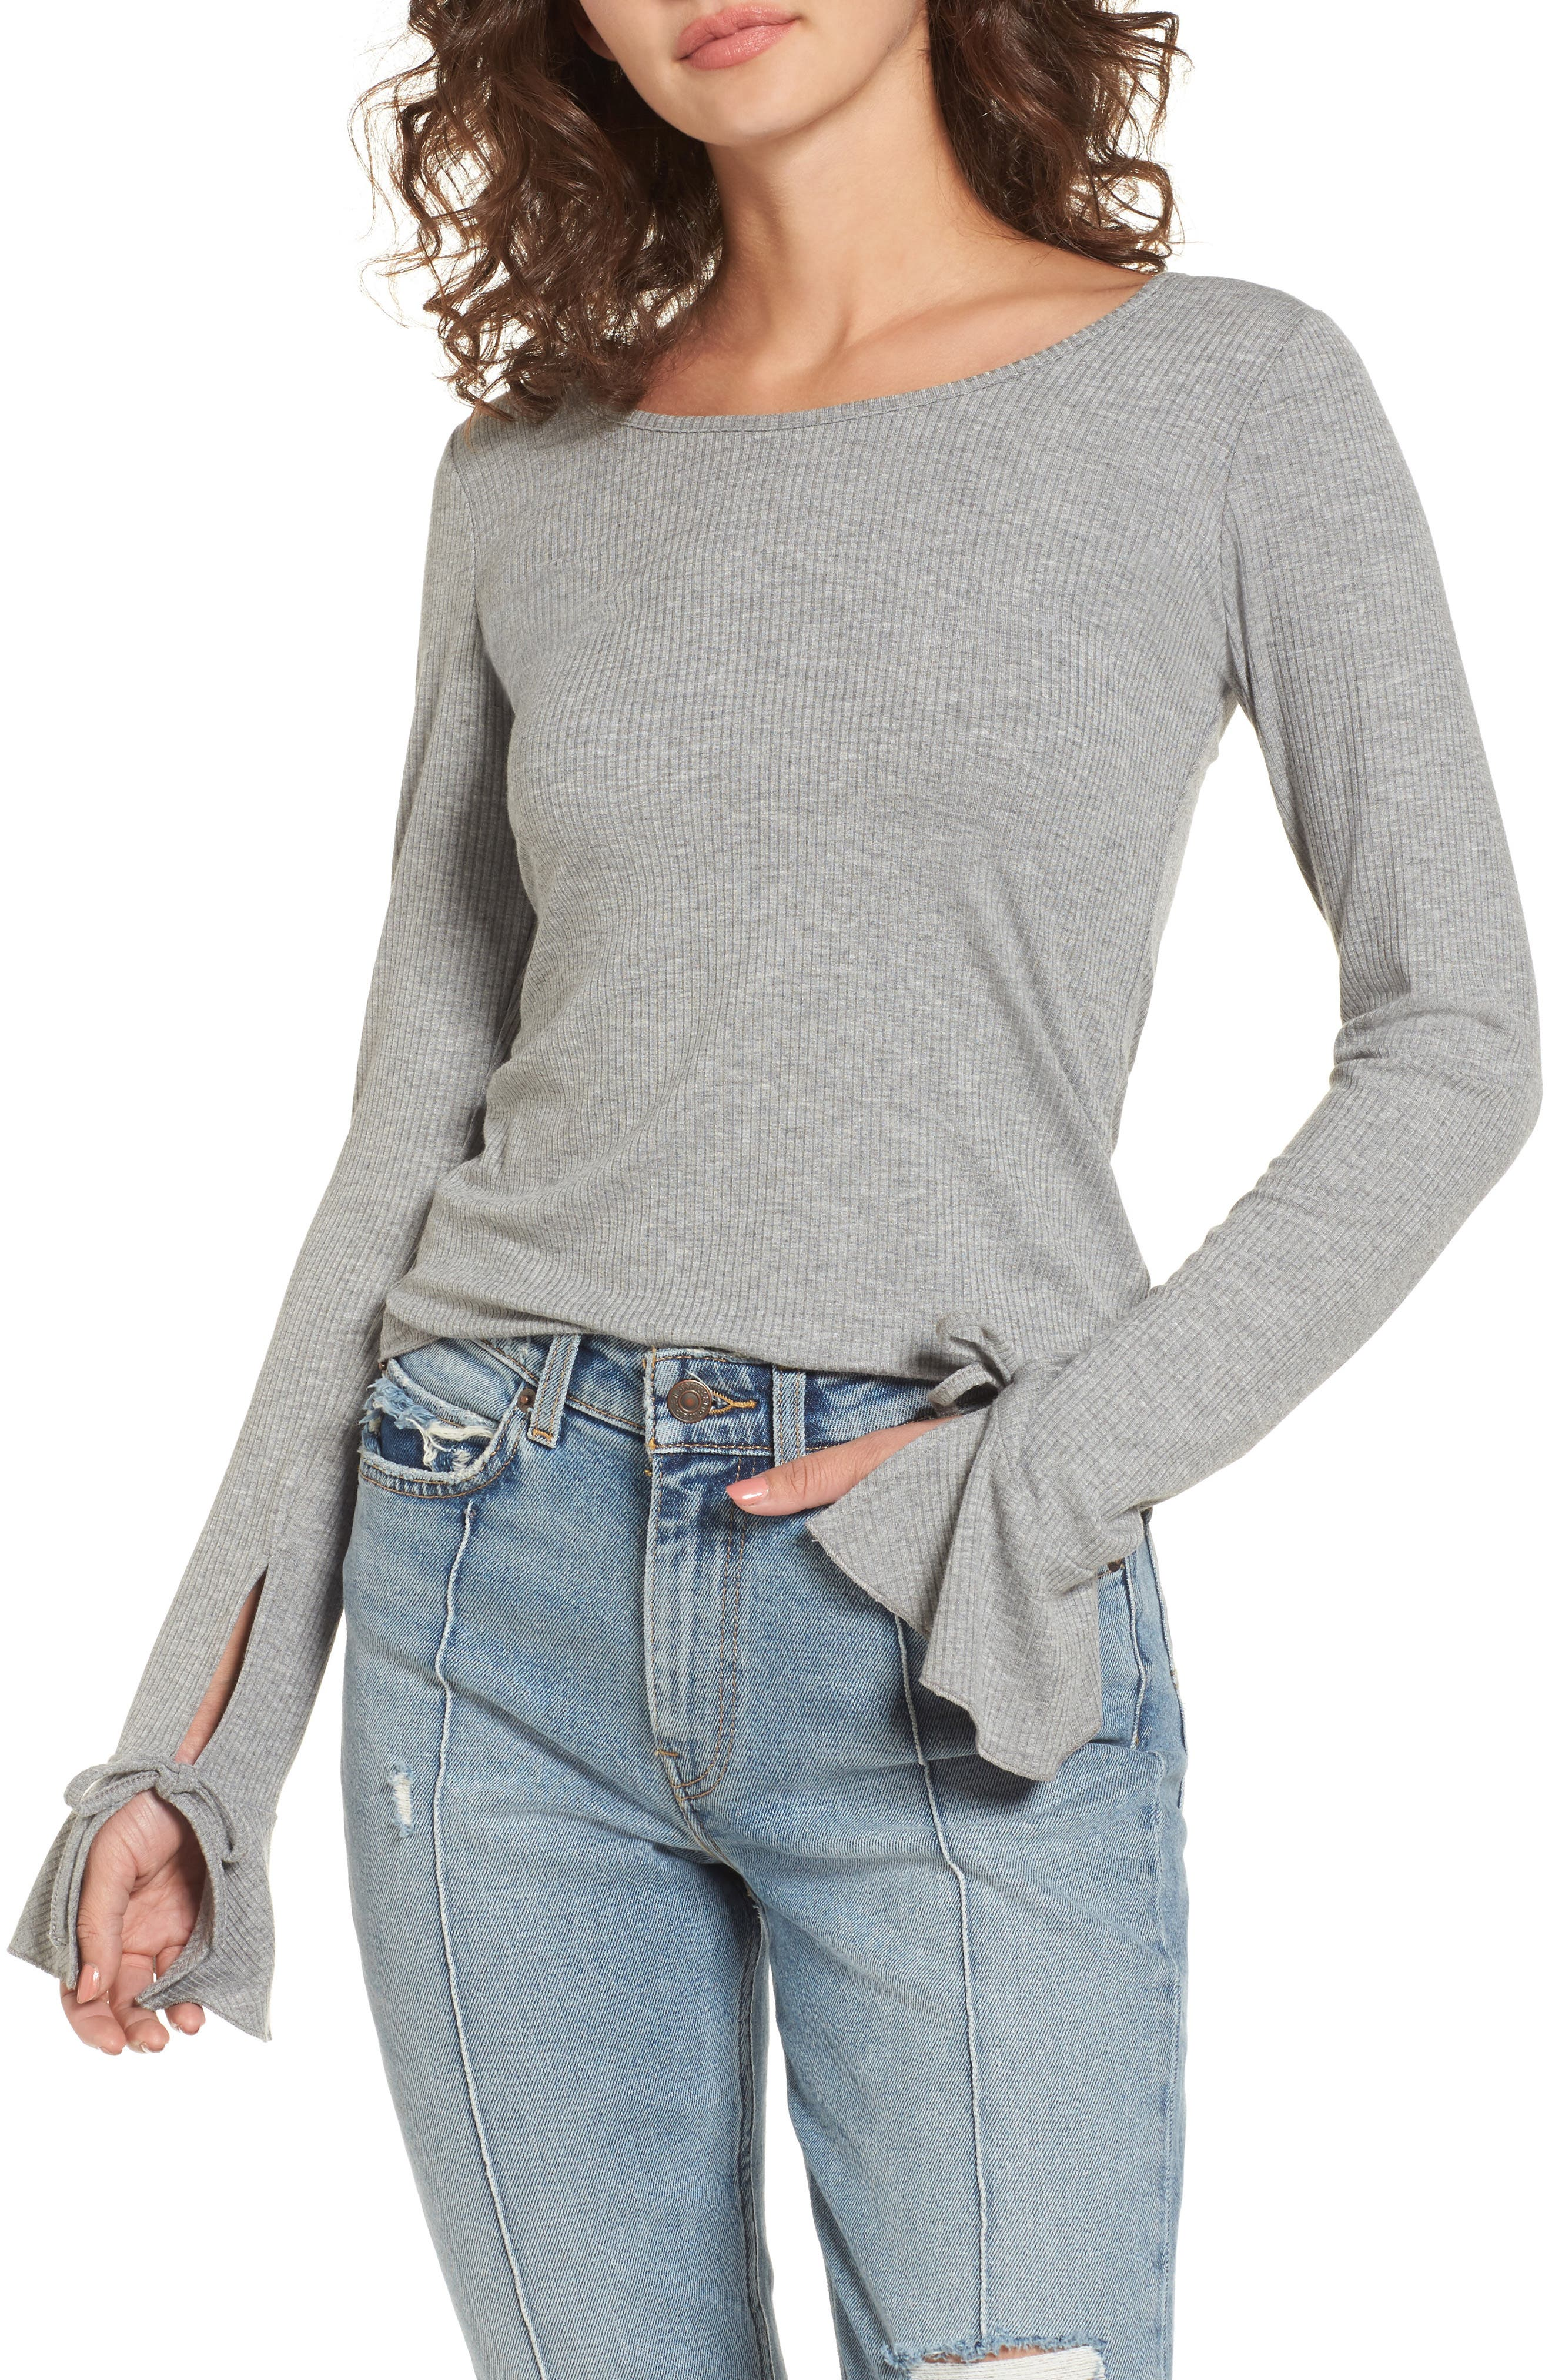 Main Image - Band of Gypsies Tie Cuff Knit Top